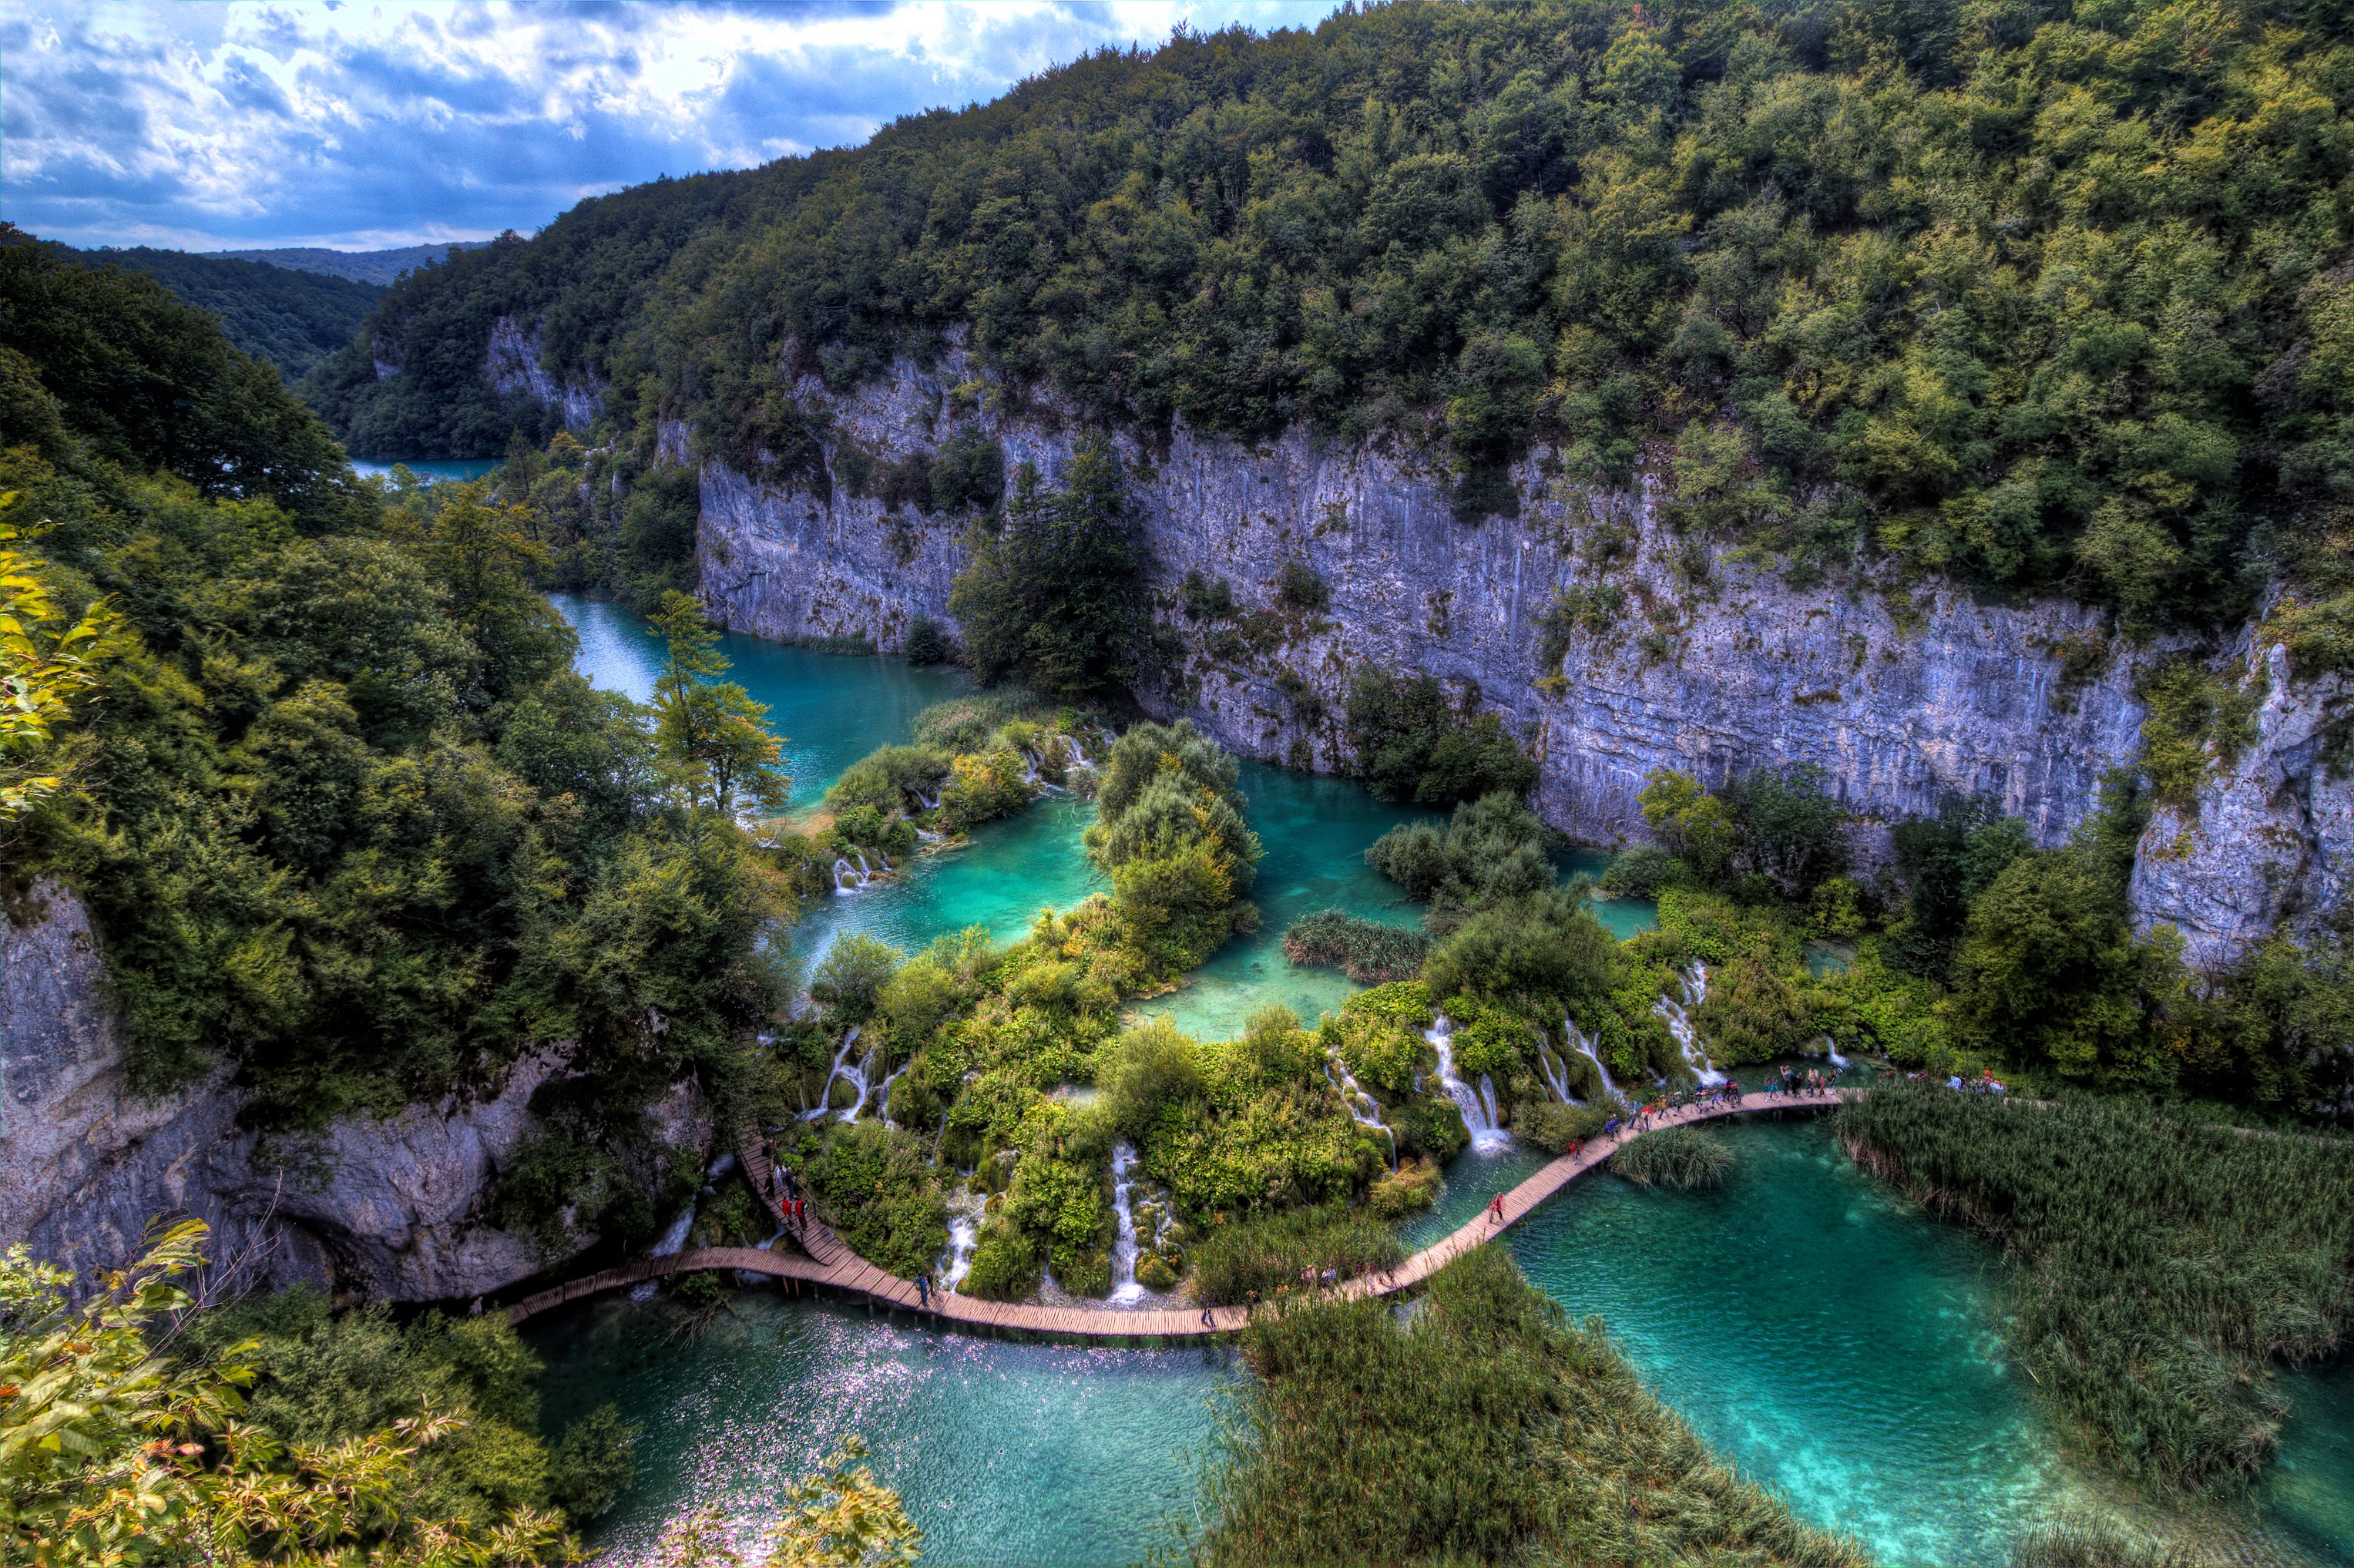 Lieblings Plitvice Lakes National Park - Waterfall in Croatia - Thousand Wonders #ND_17